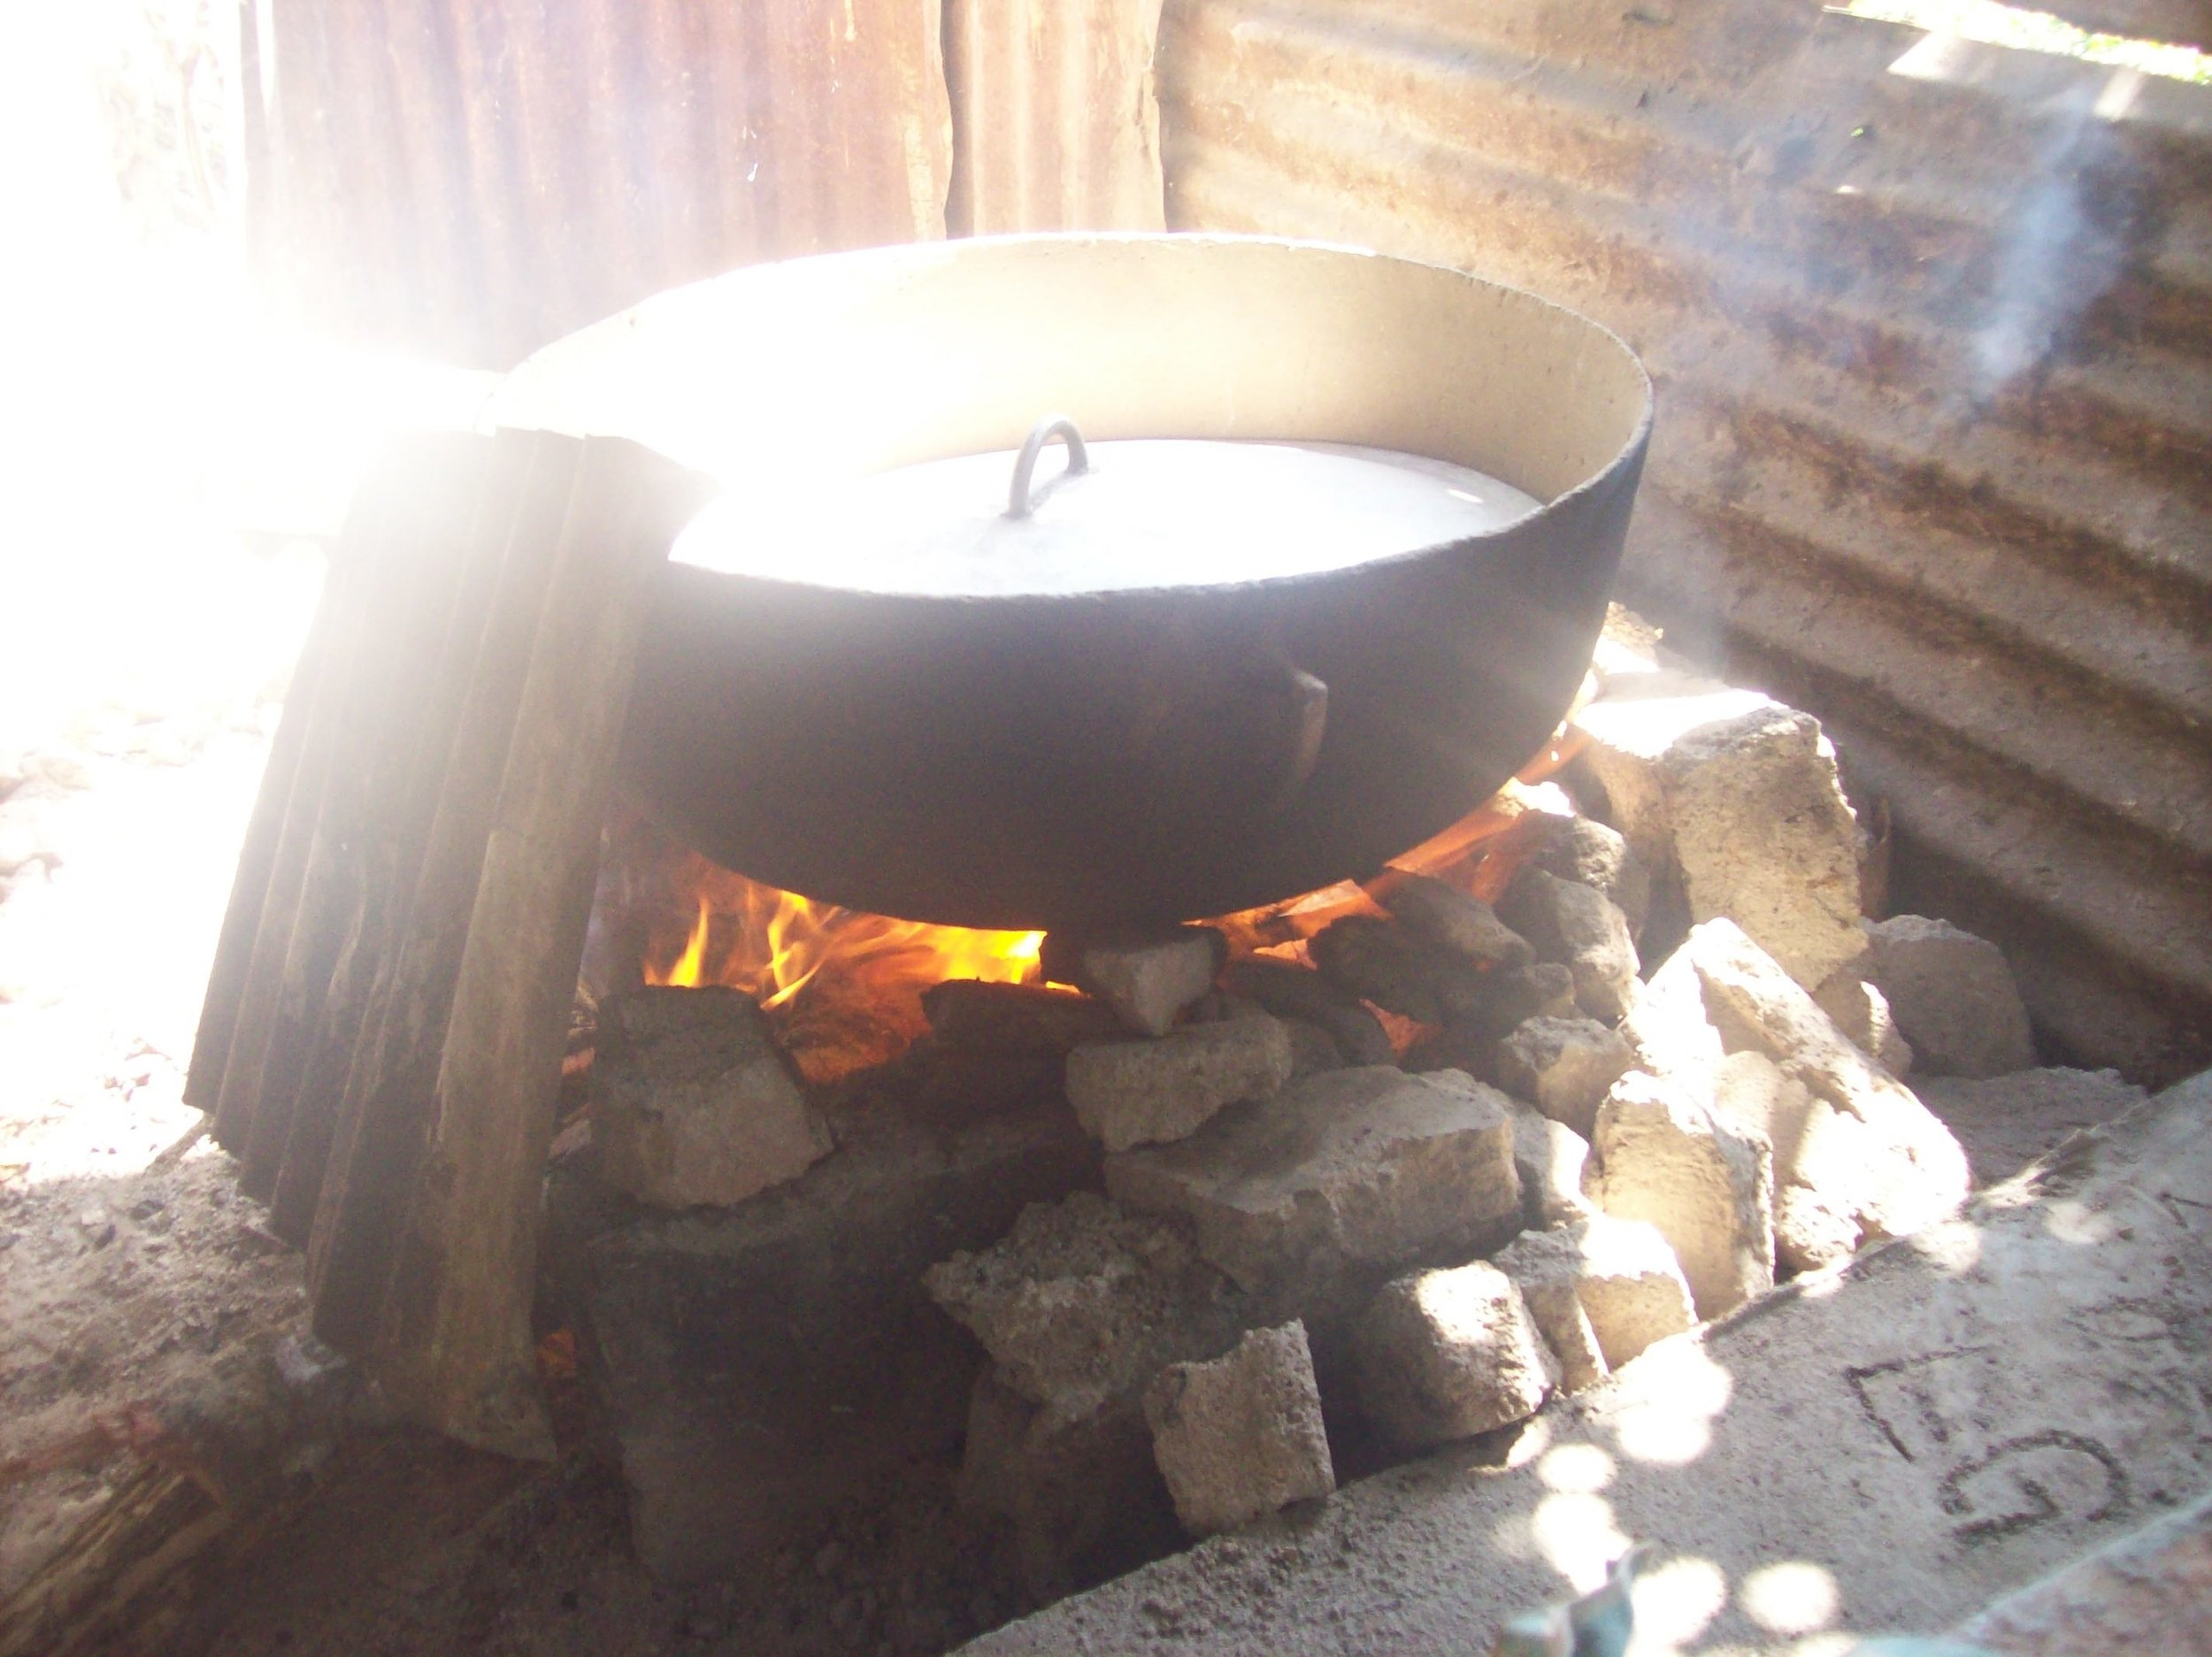 Most families in La Pedregosa cook over an open fire and had never baked before. - photo by LaTaurus Whitley